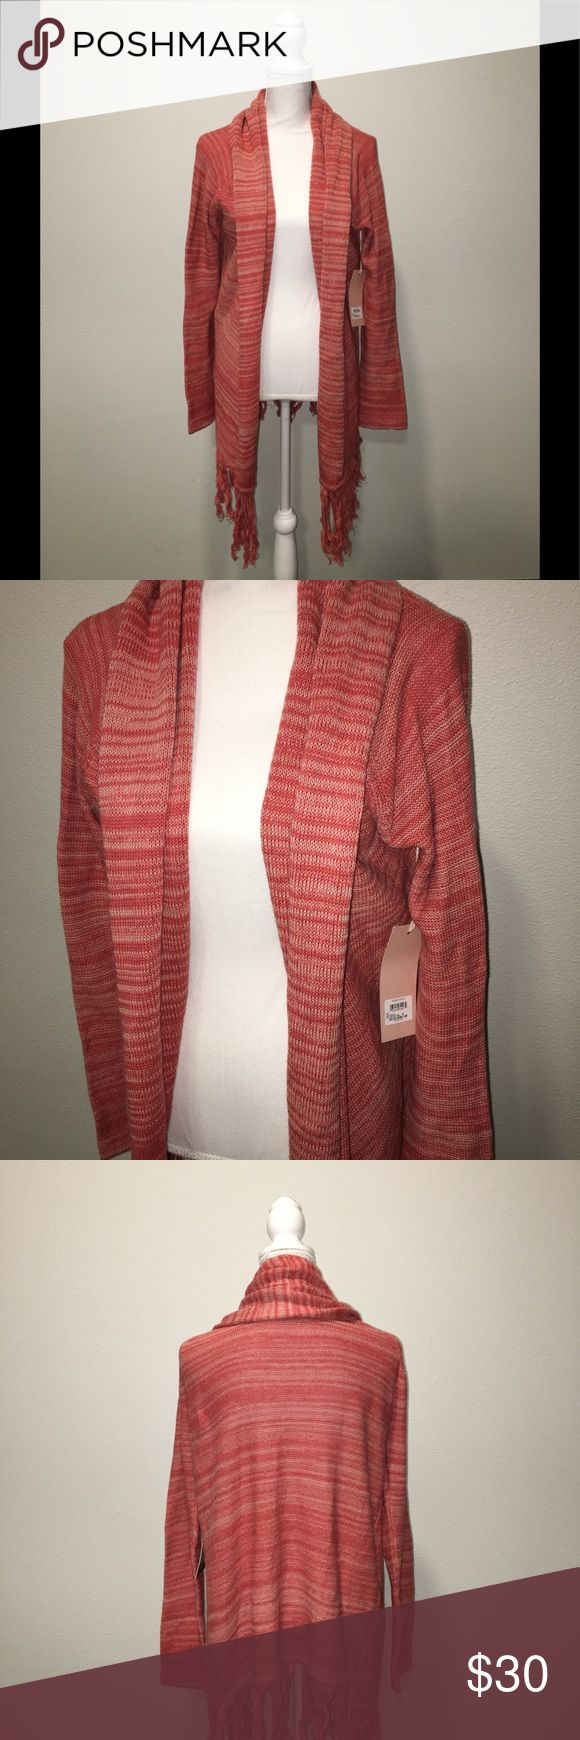 Sun & shadow open cardigan NWT Size M Sun & Shadow Sweaters Cardigans